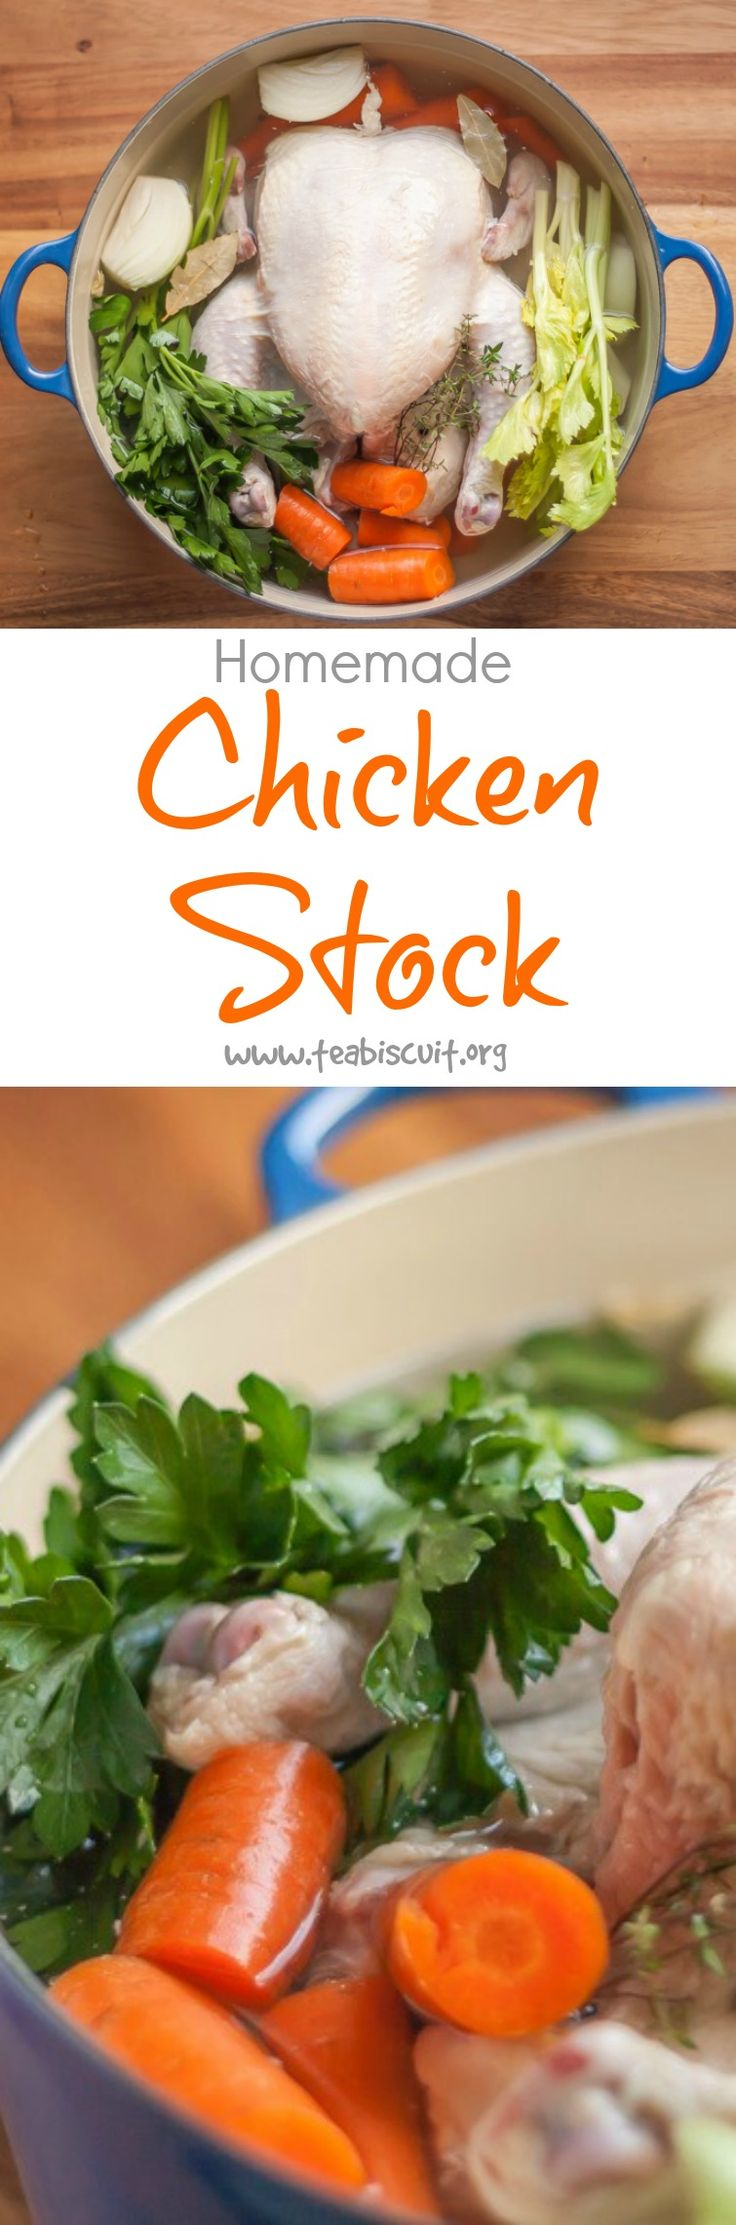 How to Cook Chicken Stock Homemade   A One Pot recipe for Chicken Stock that's a great alternative to the store bought varieties